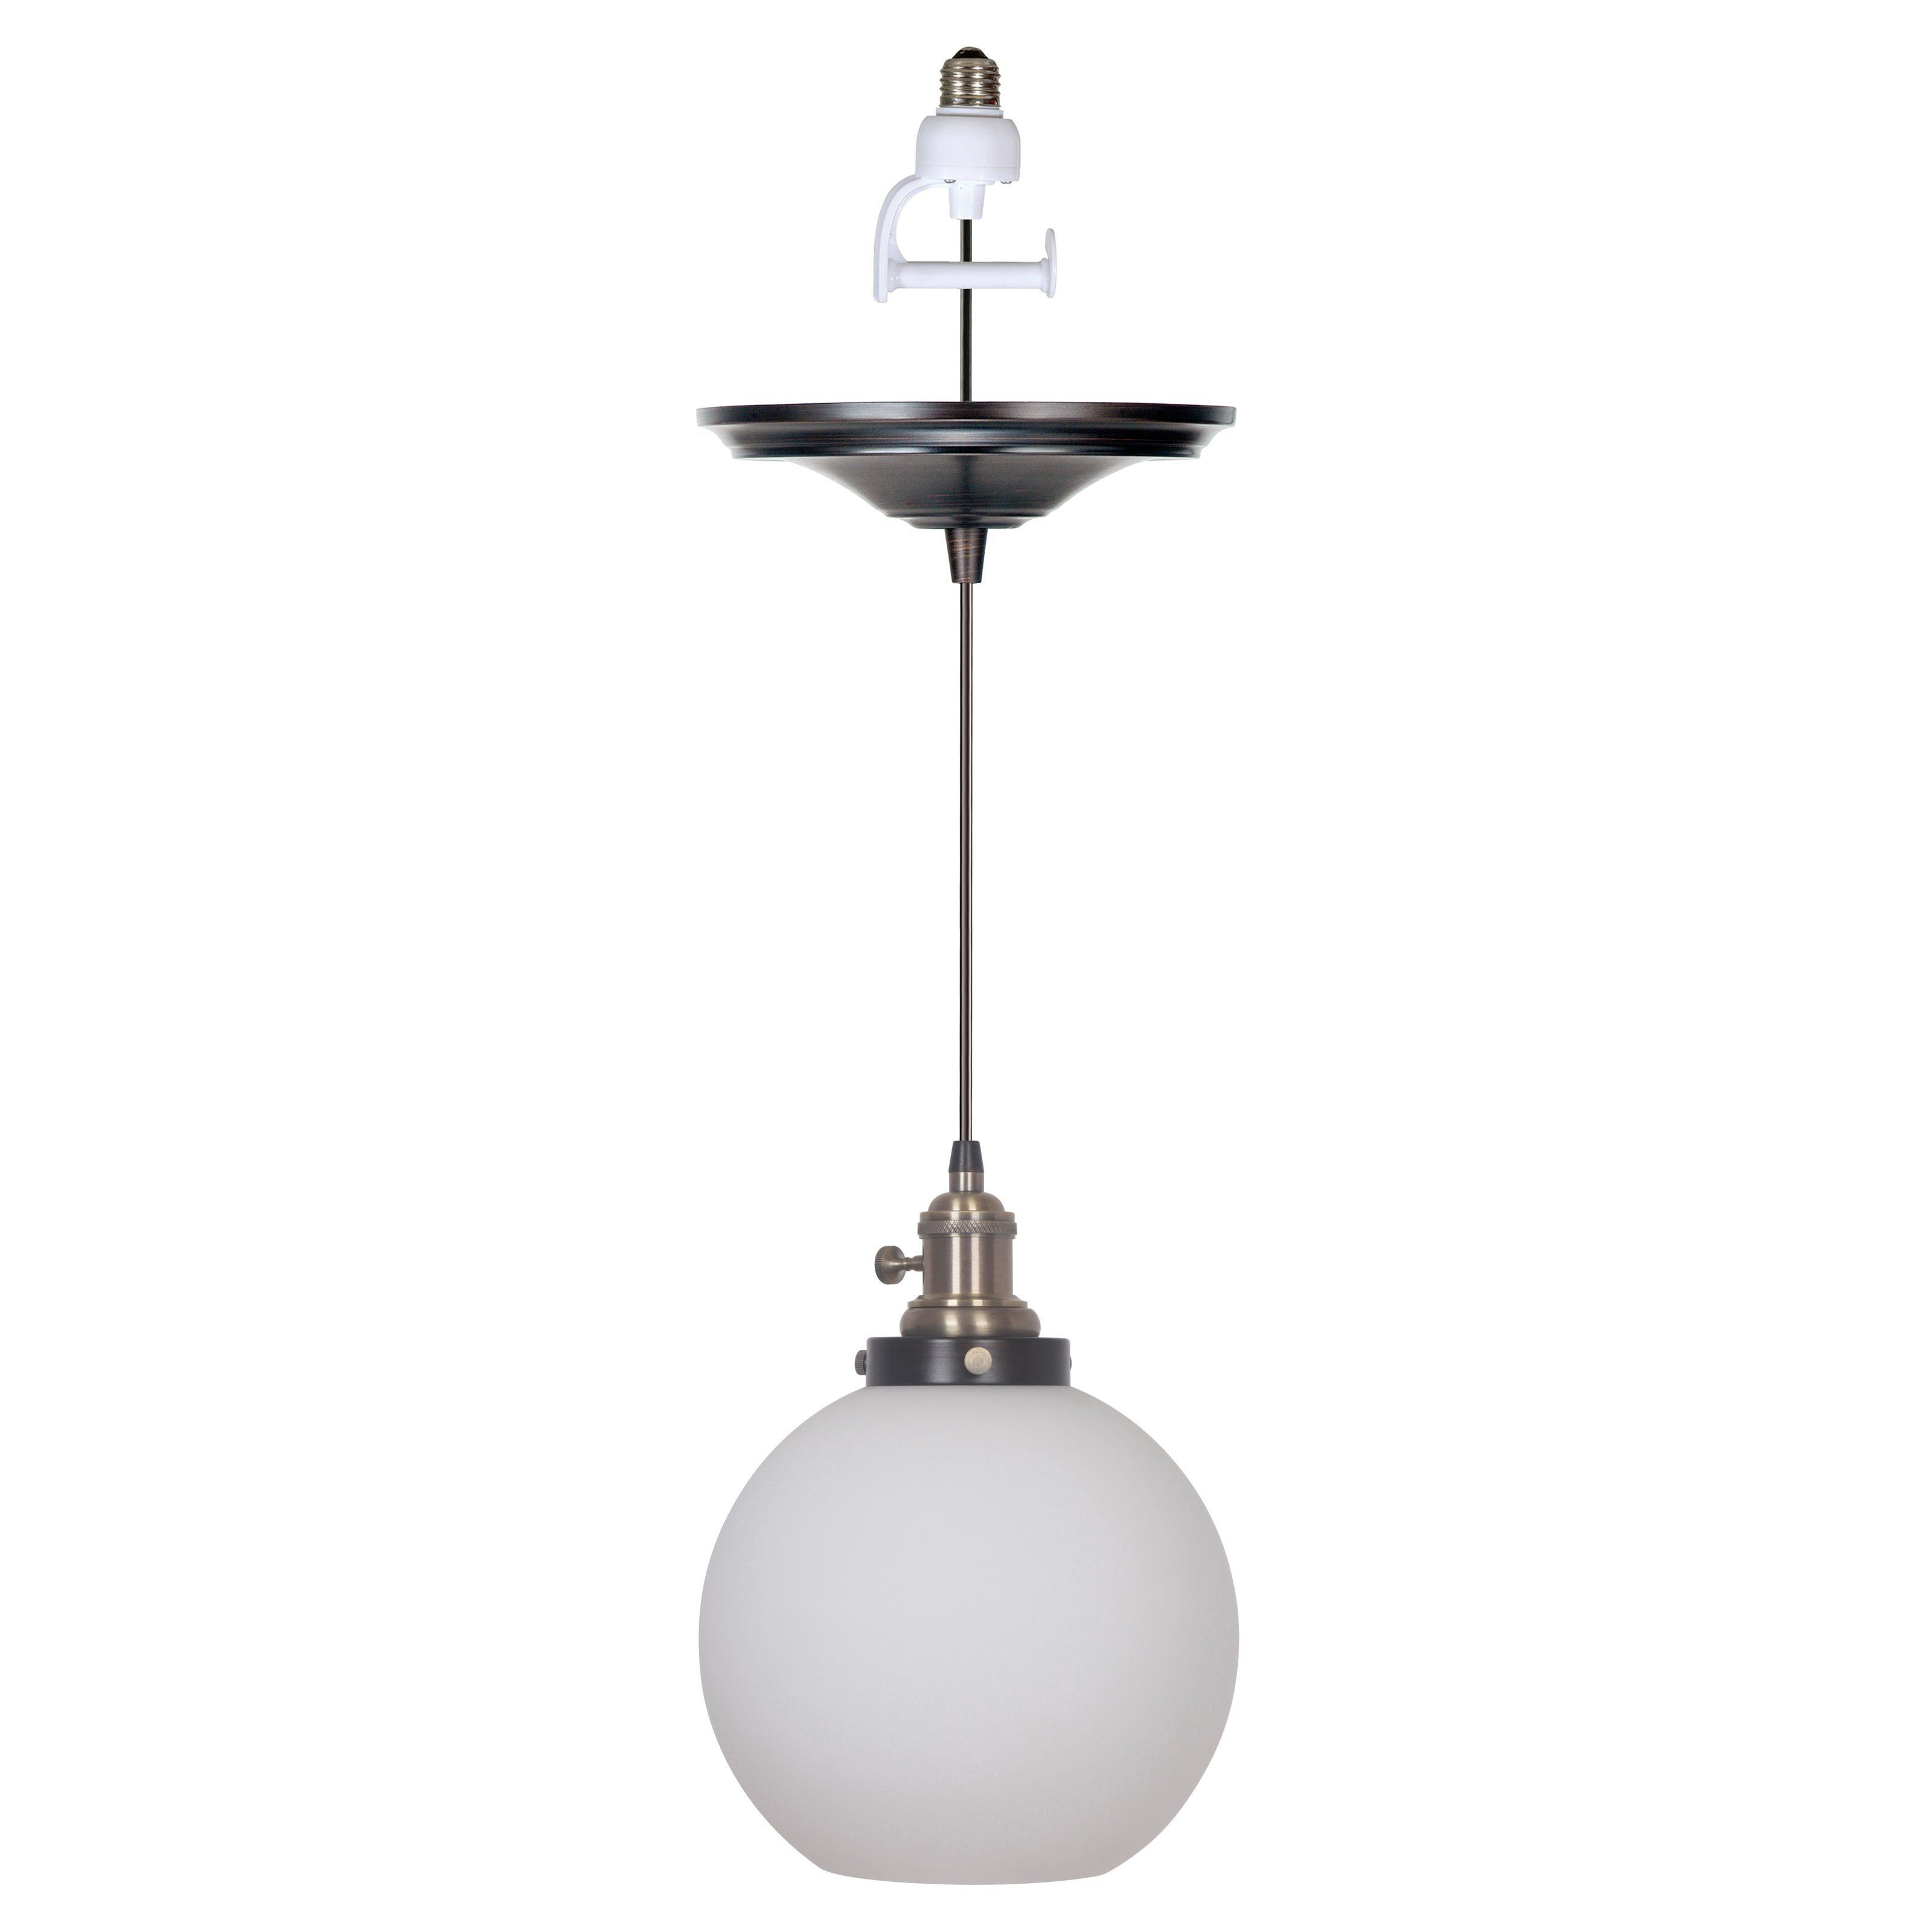 Bautista 1 Light Single Globe Pendants For Most Up To Date Worth Home Products Instant Screw In Pendant Light With (View 3 of 20)